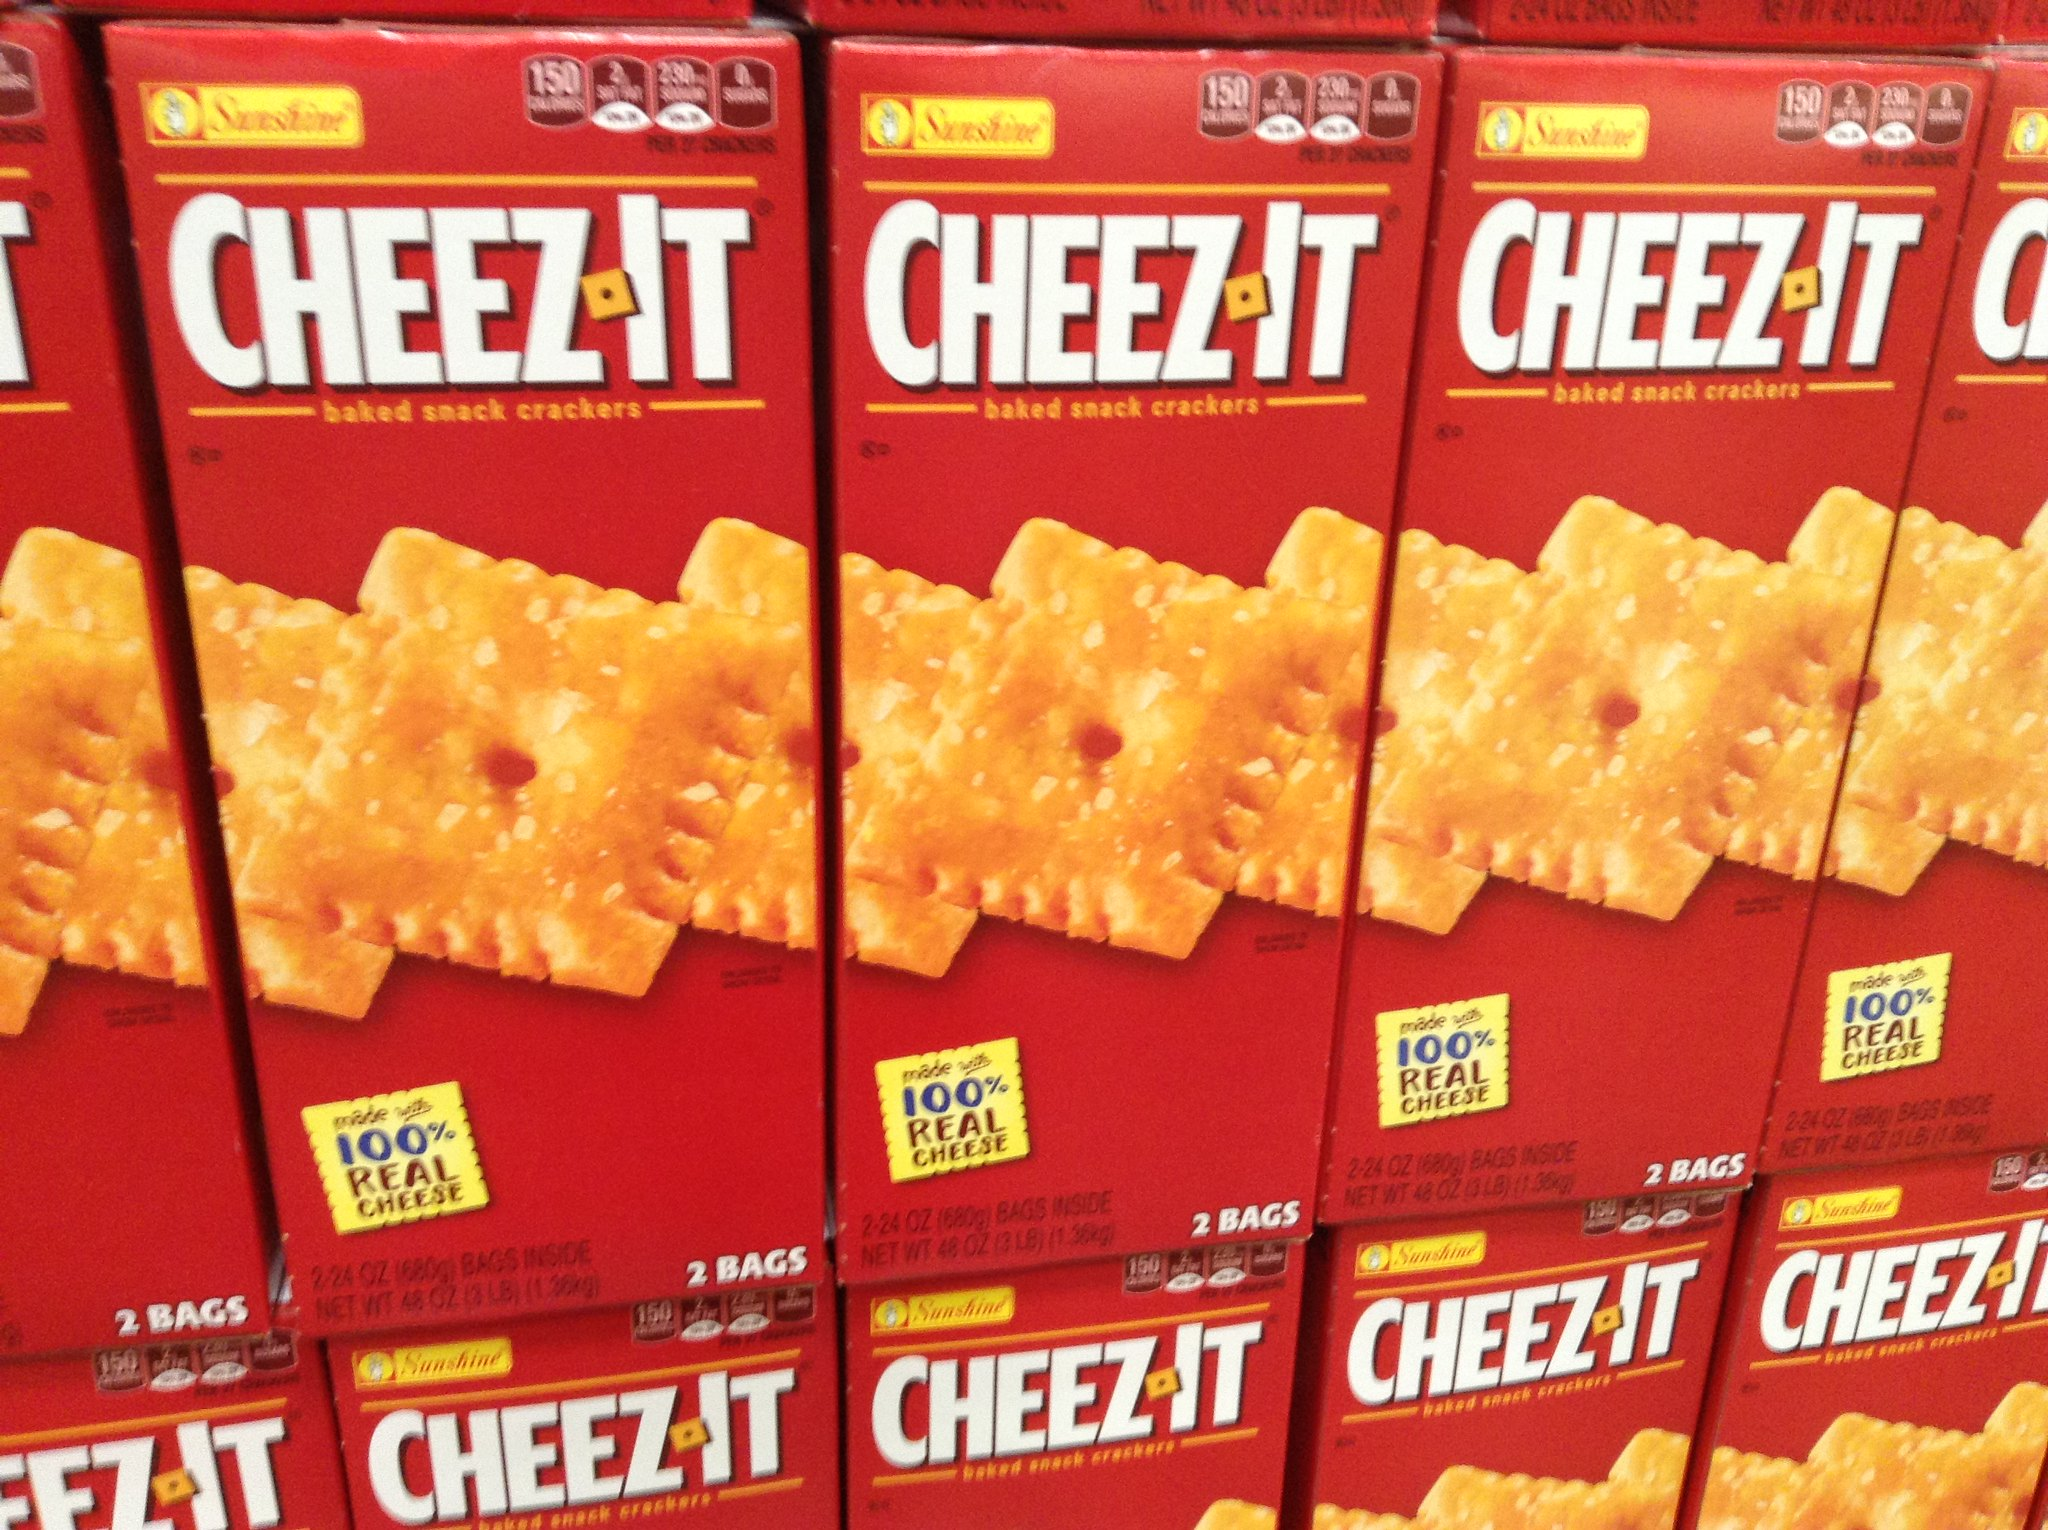 boxes of cheez-it crackers